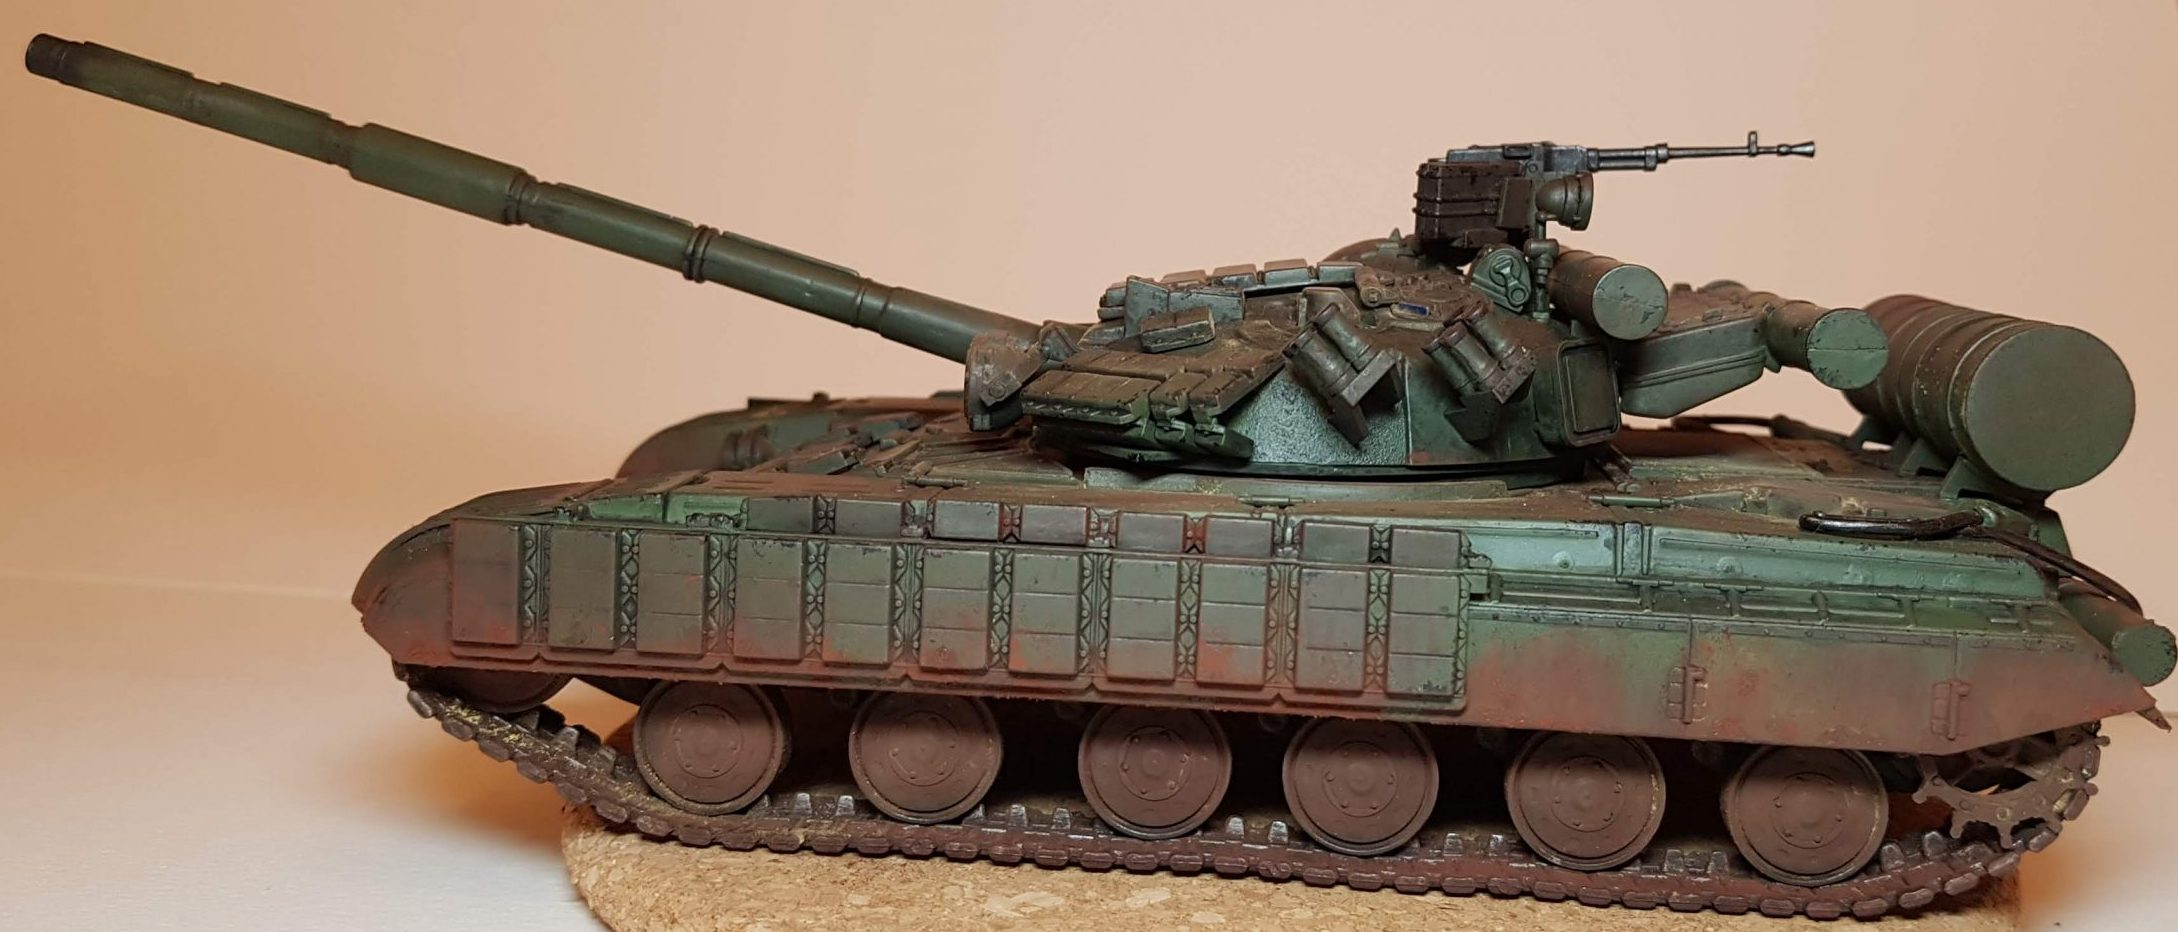 T-64B - View 3 - 1/35 Scale - Built By Wright Built - Skif Models